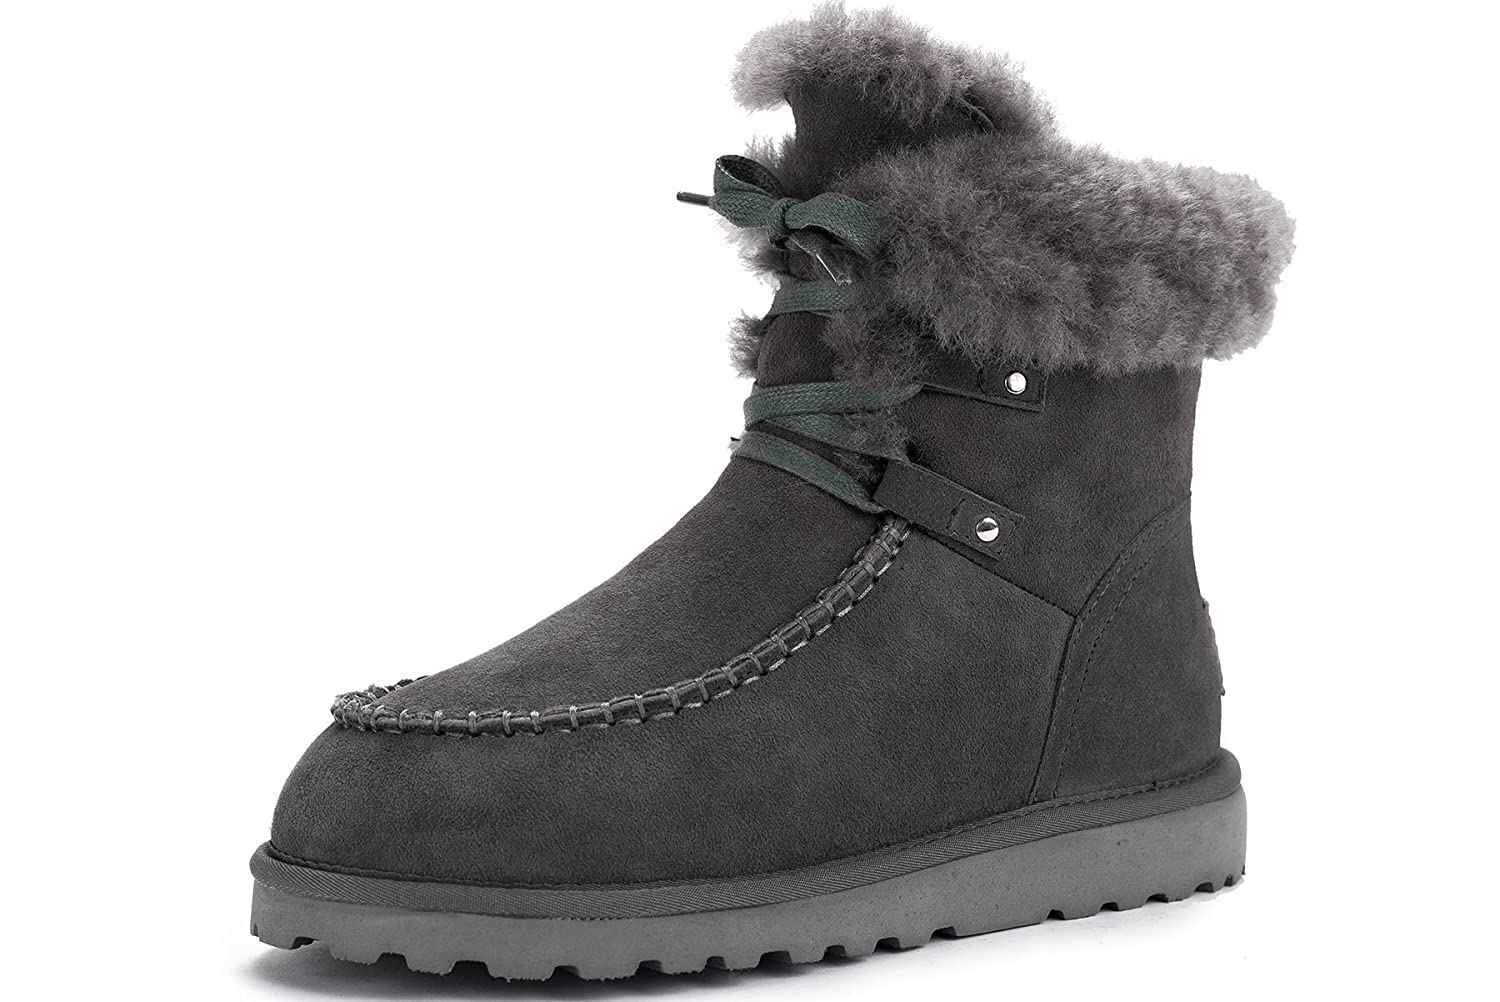 OZZEG Women's Snow Shearling Boots Lace up Newest Designed Warm Lining Boots Sheepskin